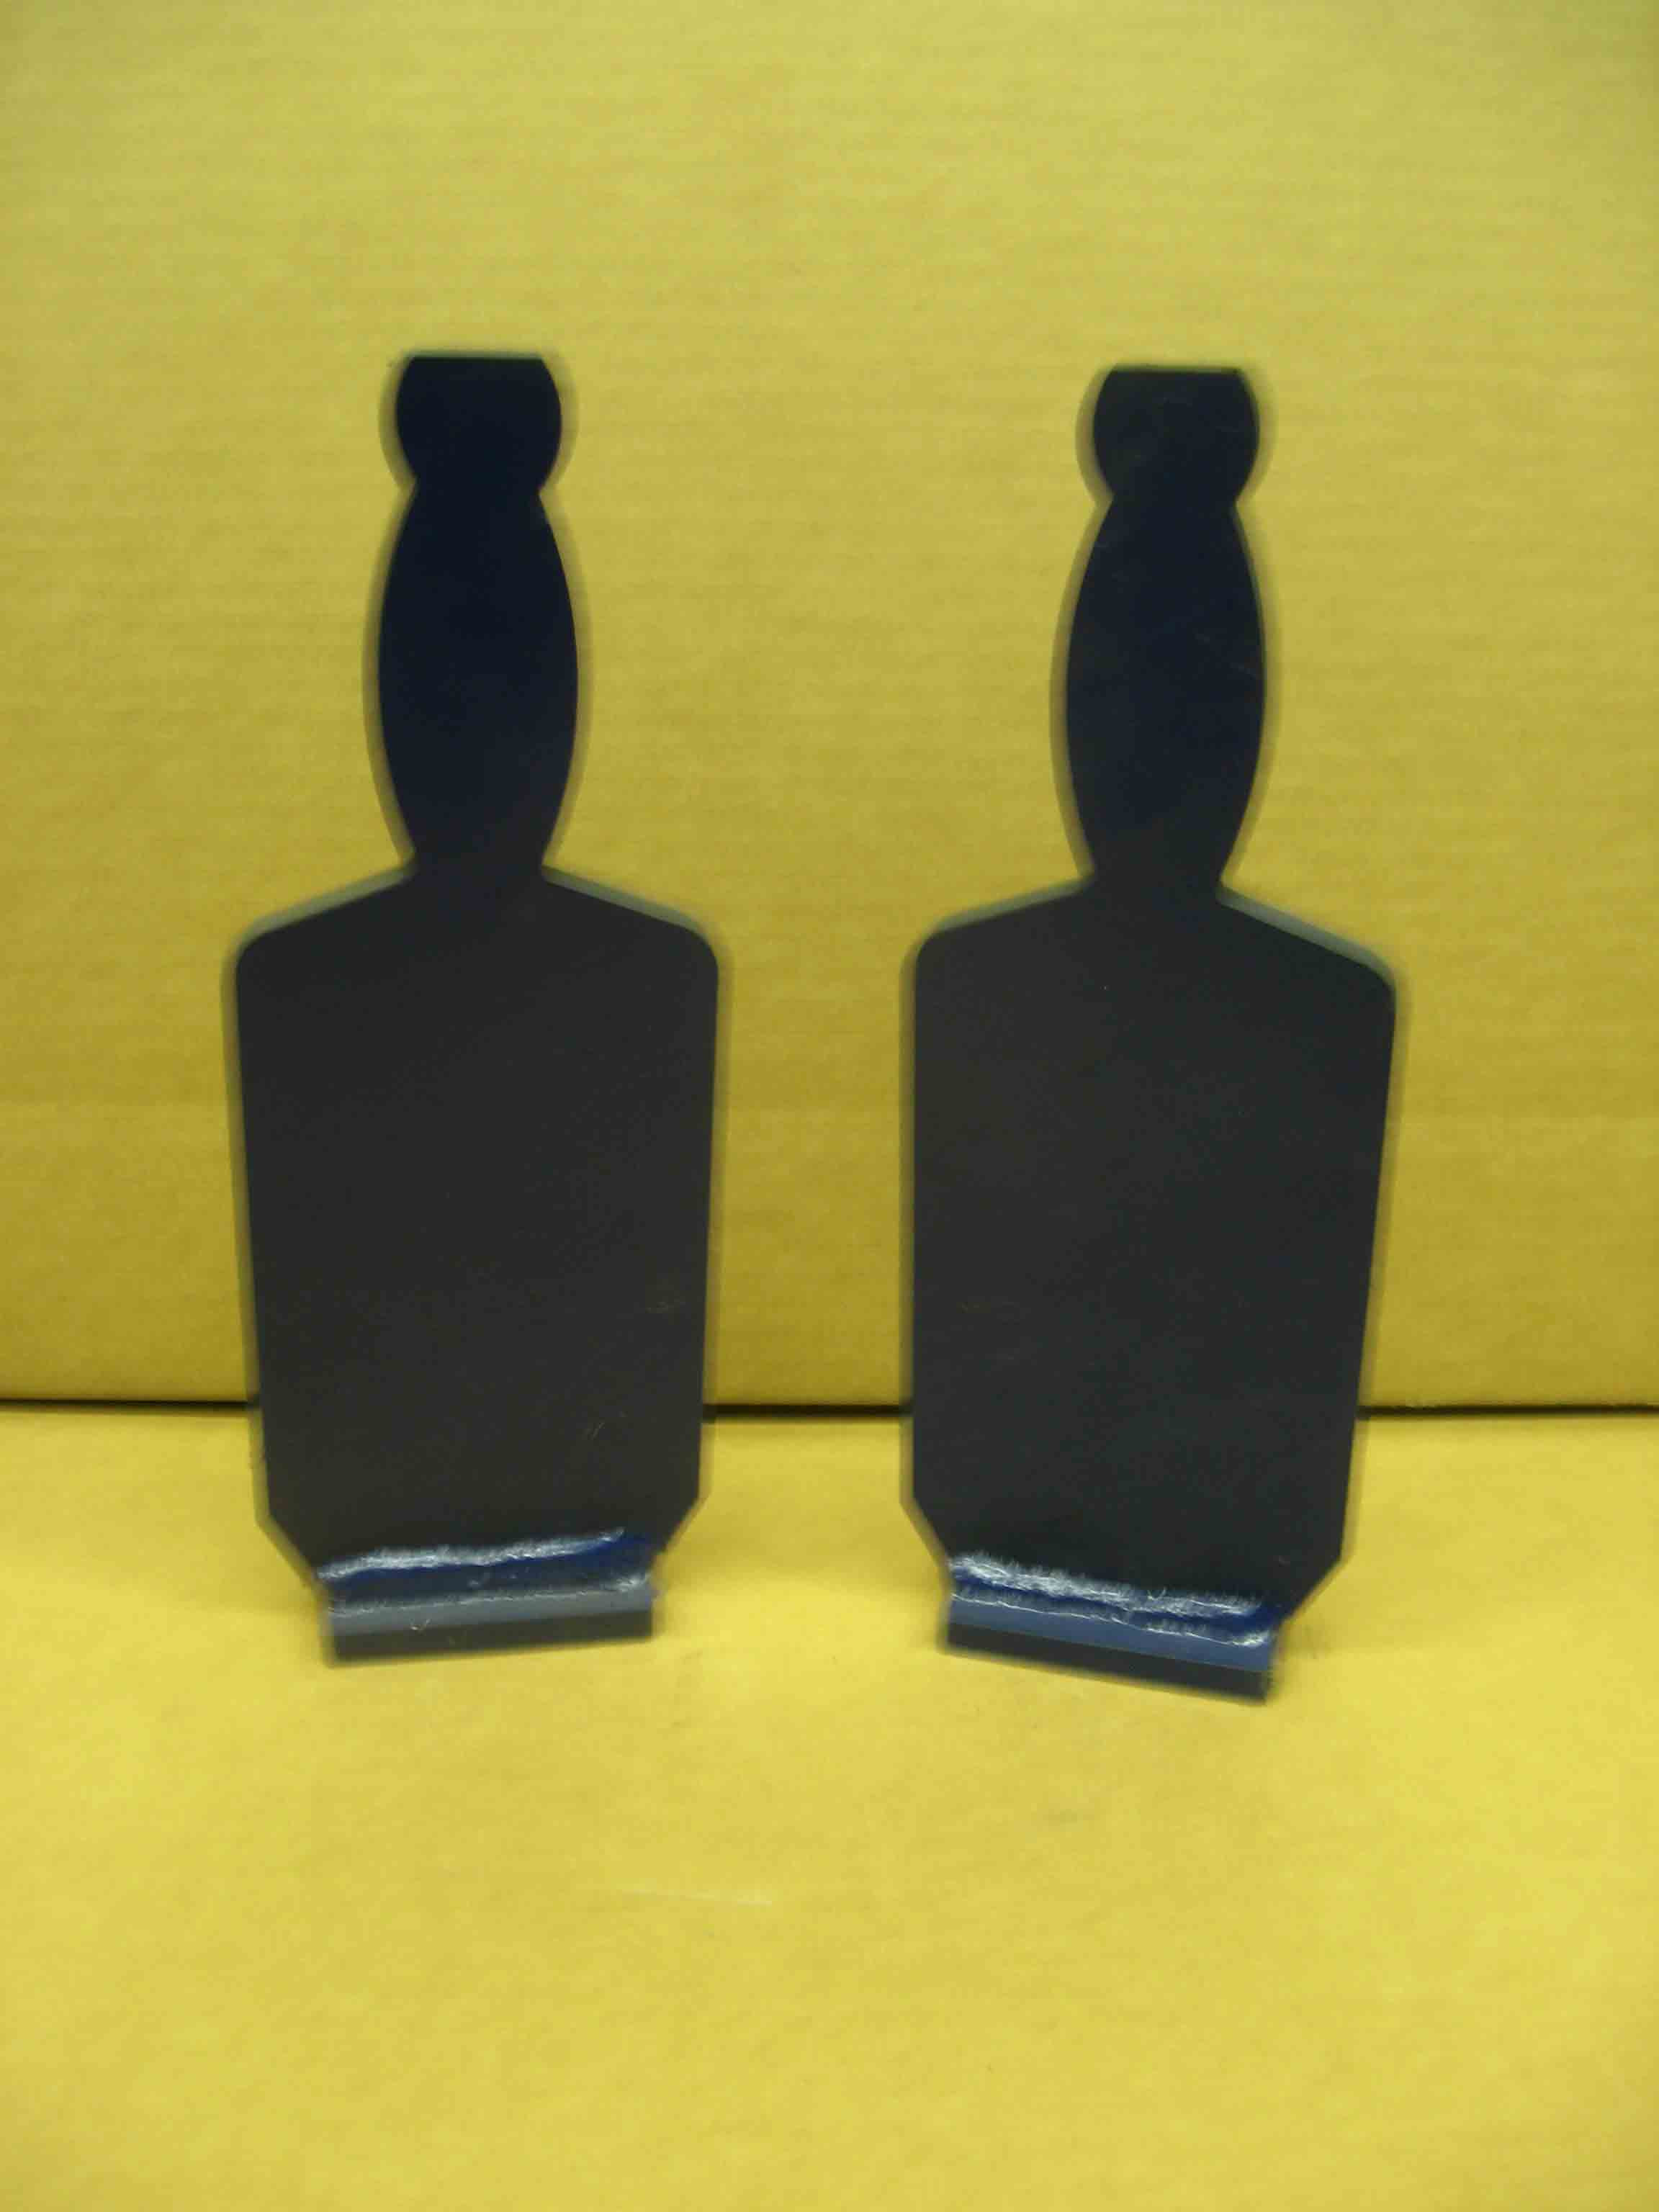 SASS Whiskey Bottle Target-Pistol*